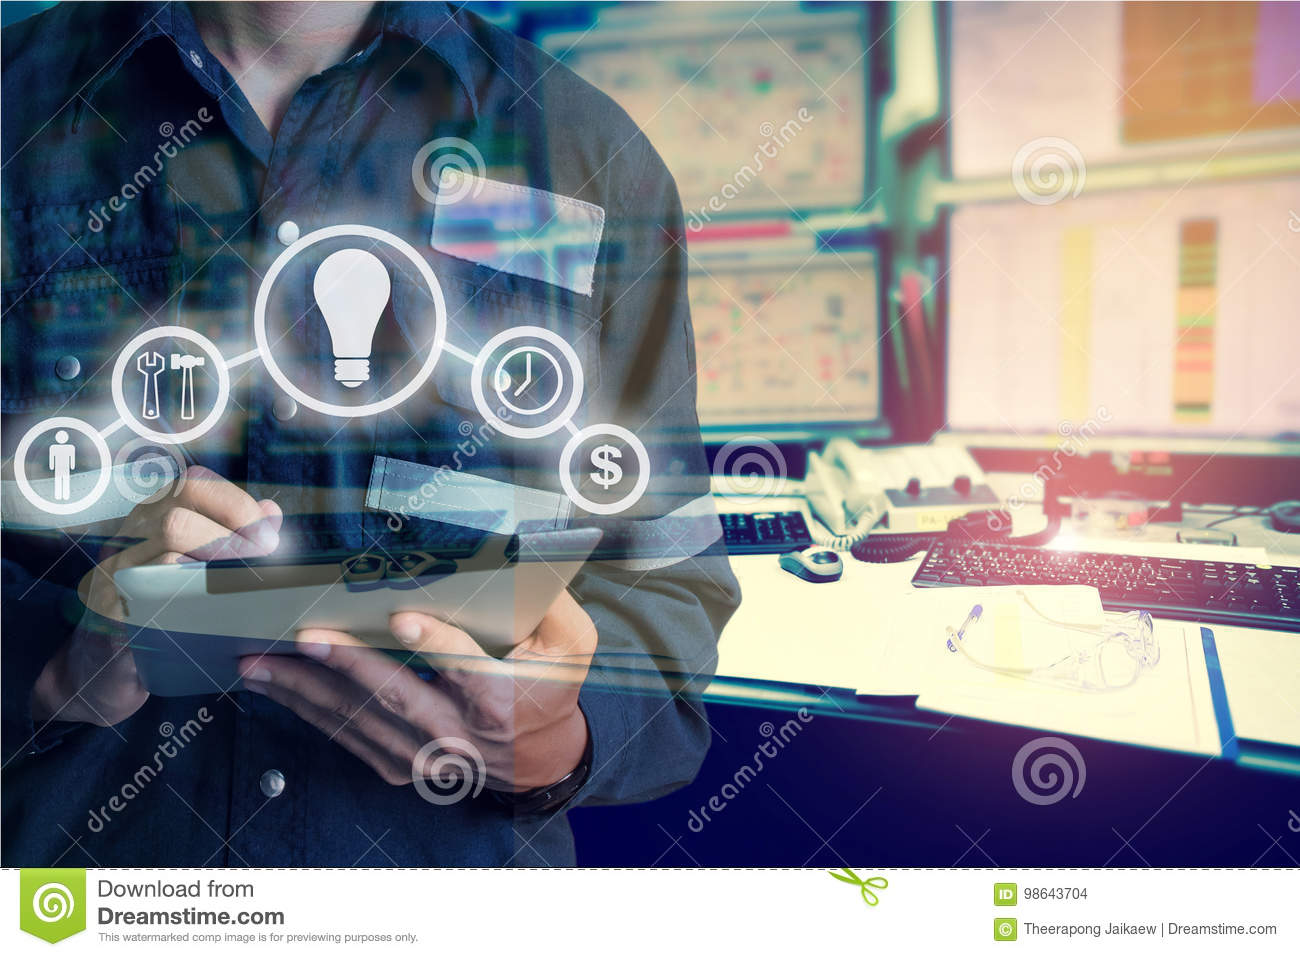 Double exposure of Engineer or Technician man with business industrial tool icons while using tablet with monitor of computers